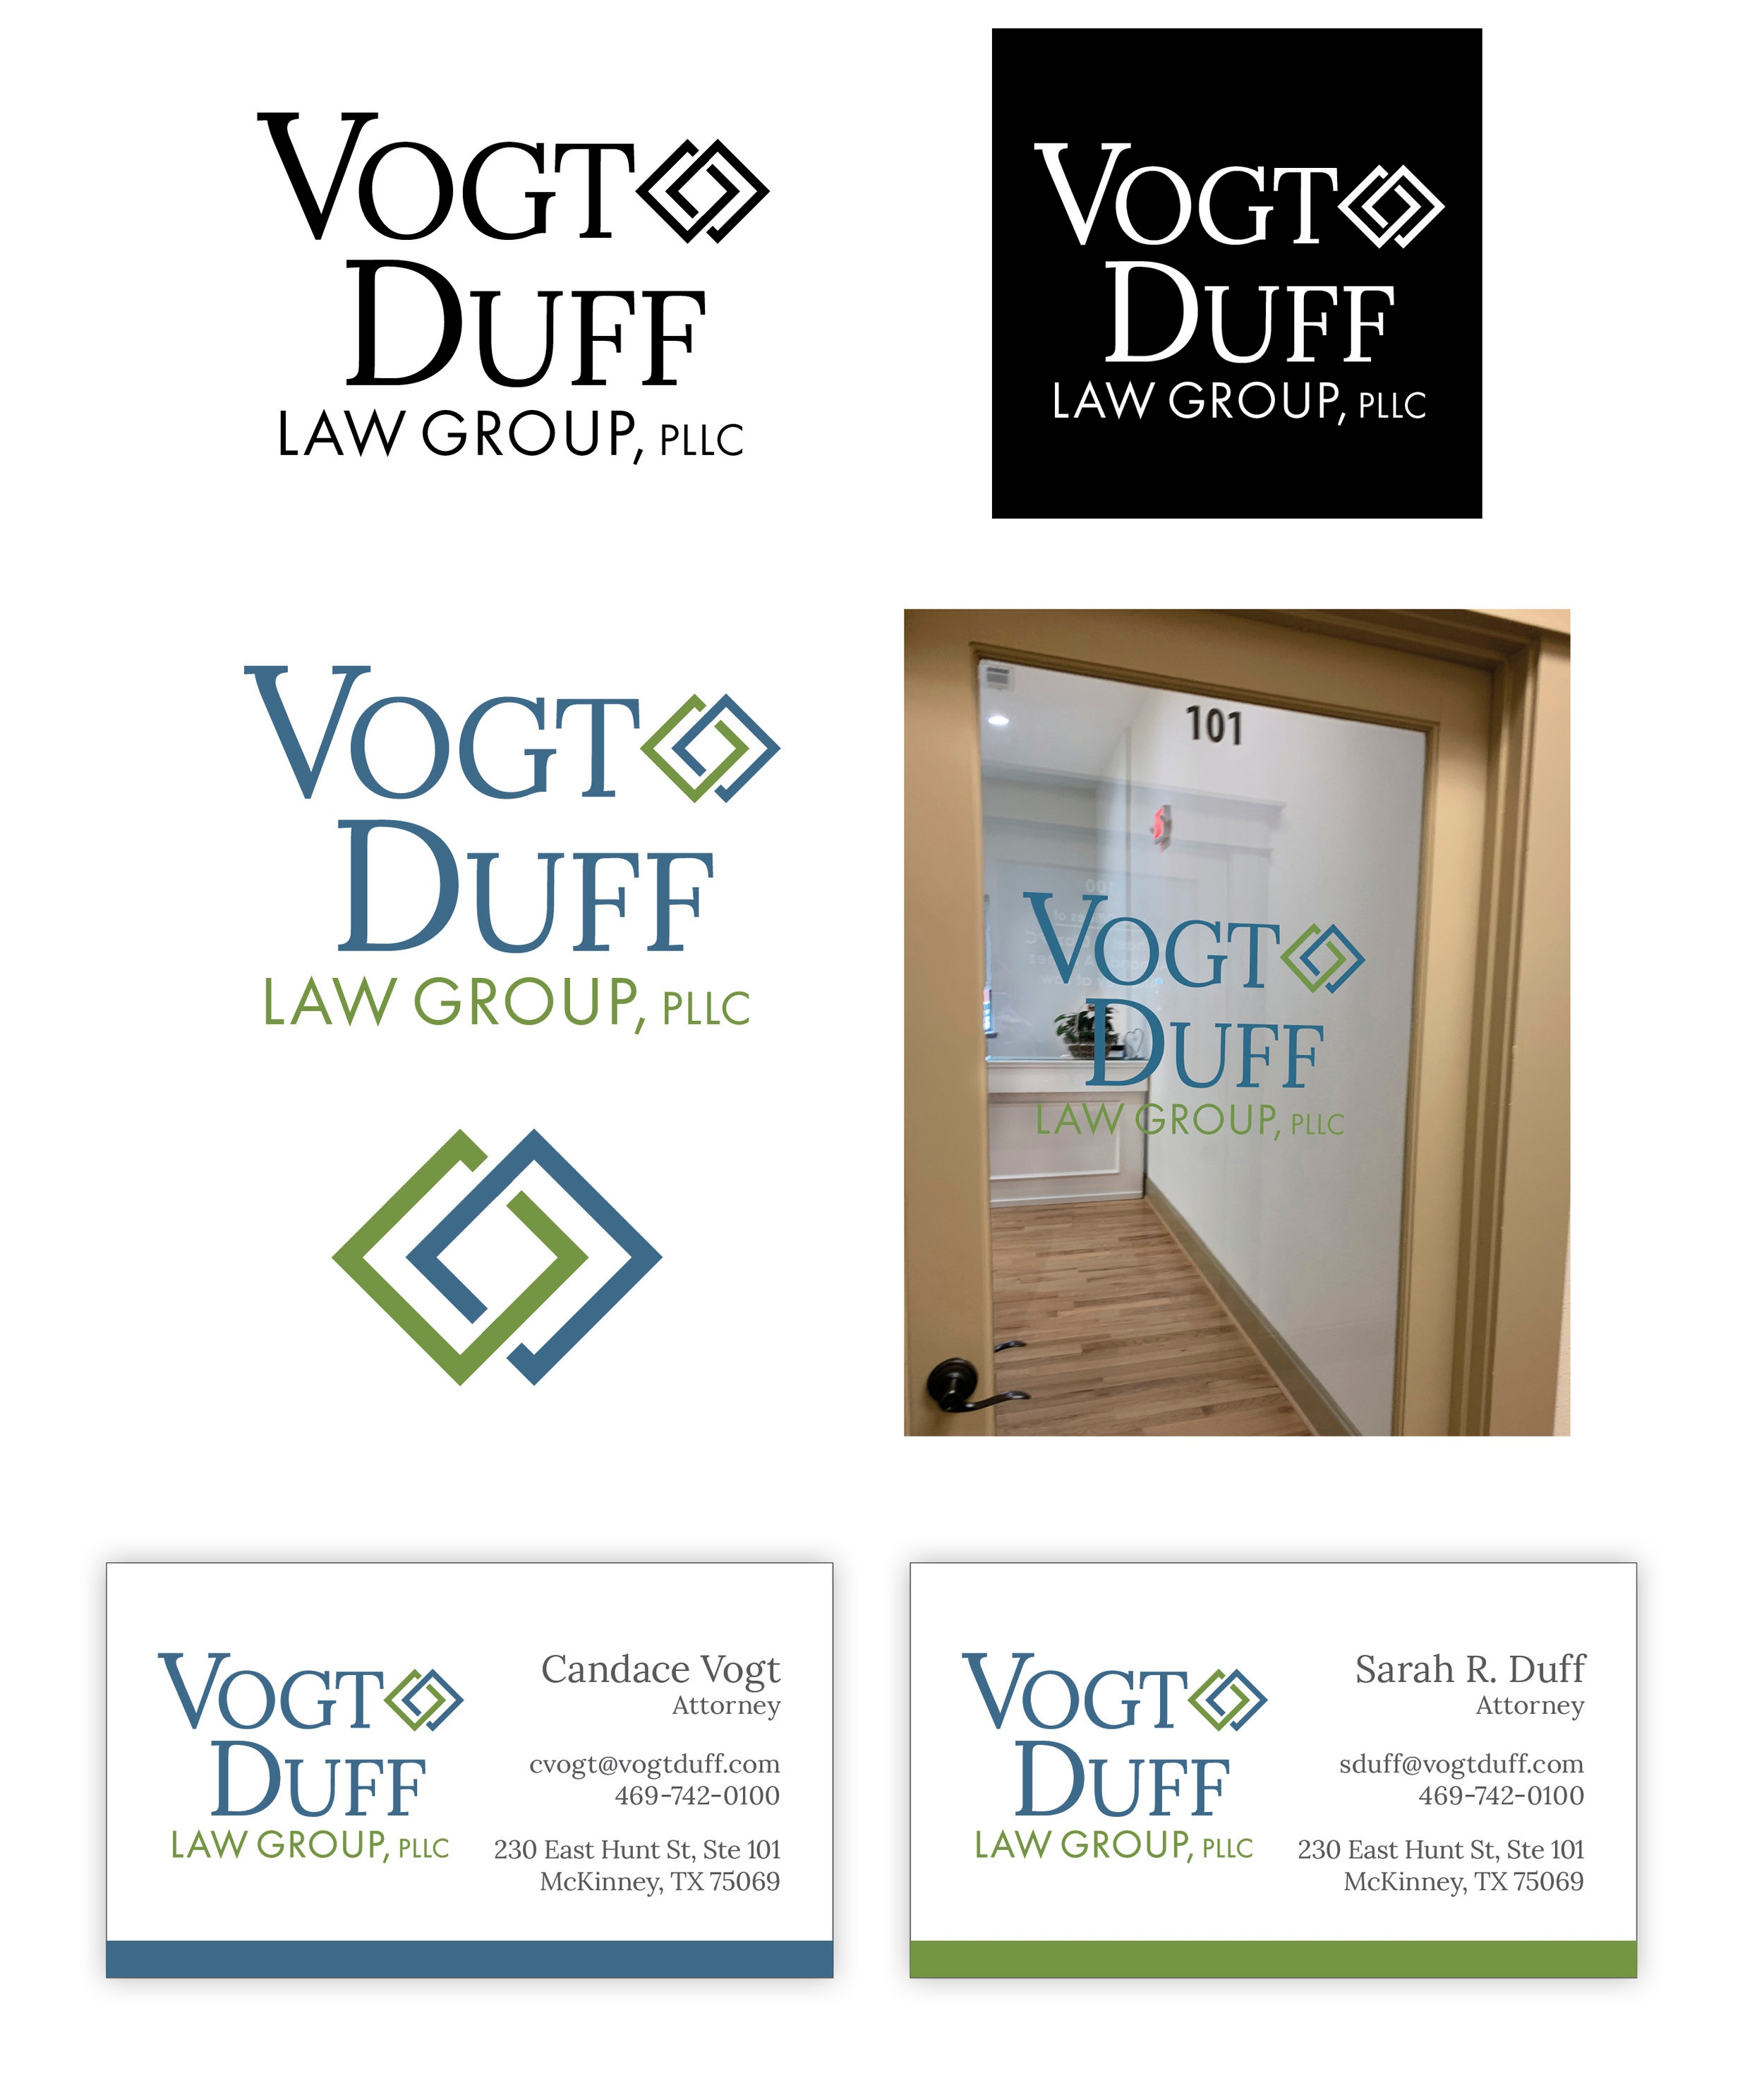 Voght-Duff-Law-final.jpg